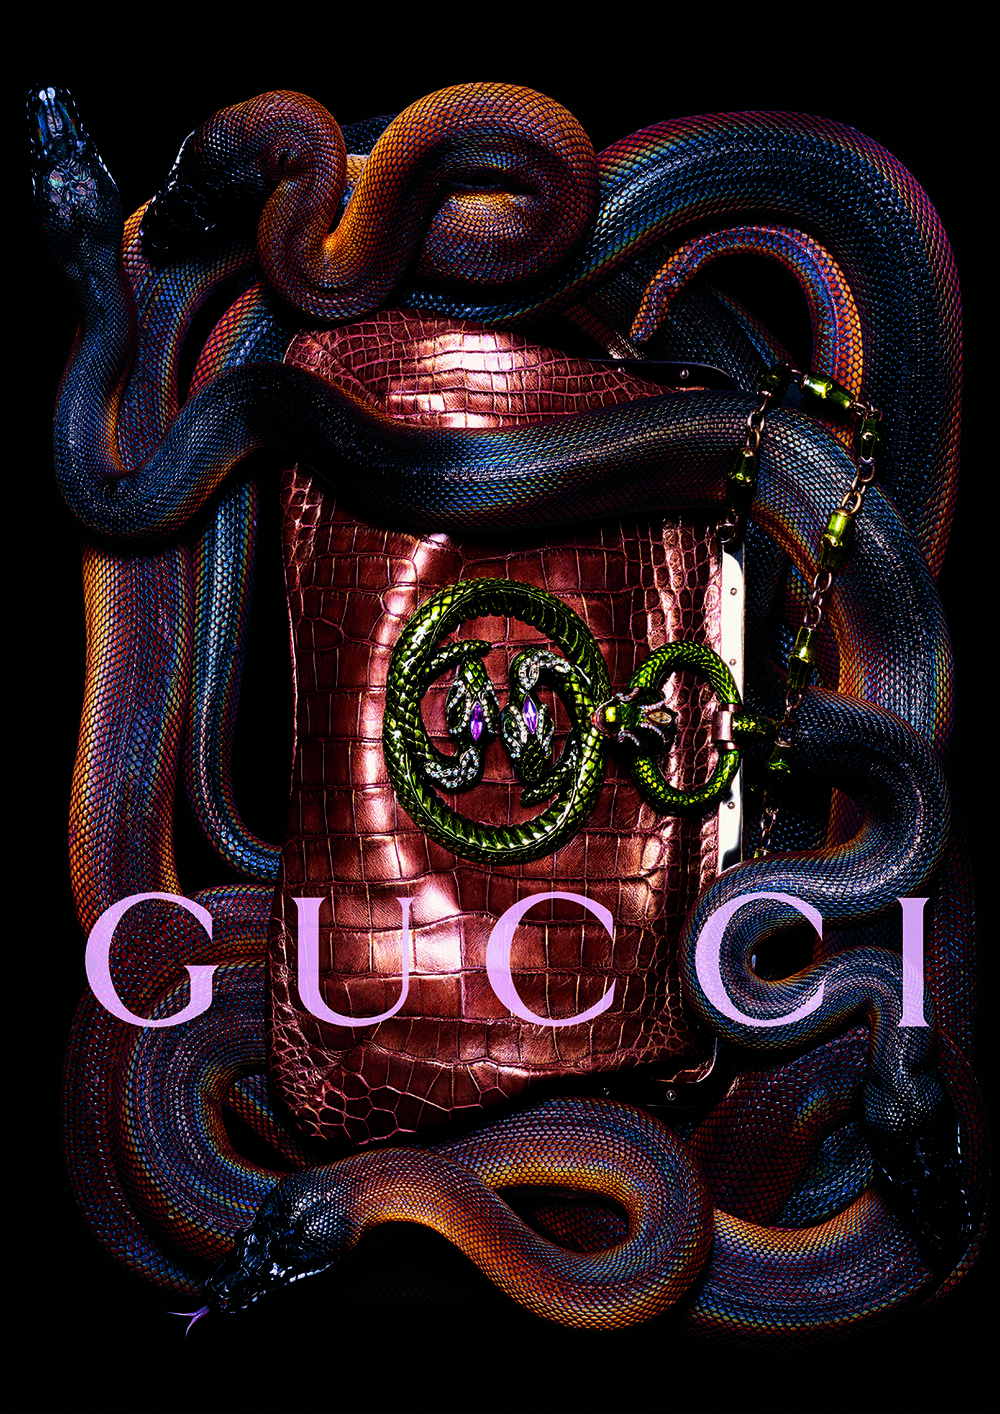 GUCCI ADS PB 3.jpg